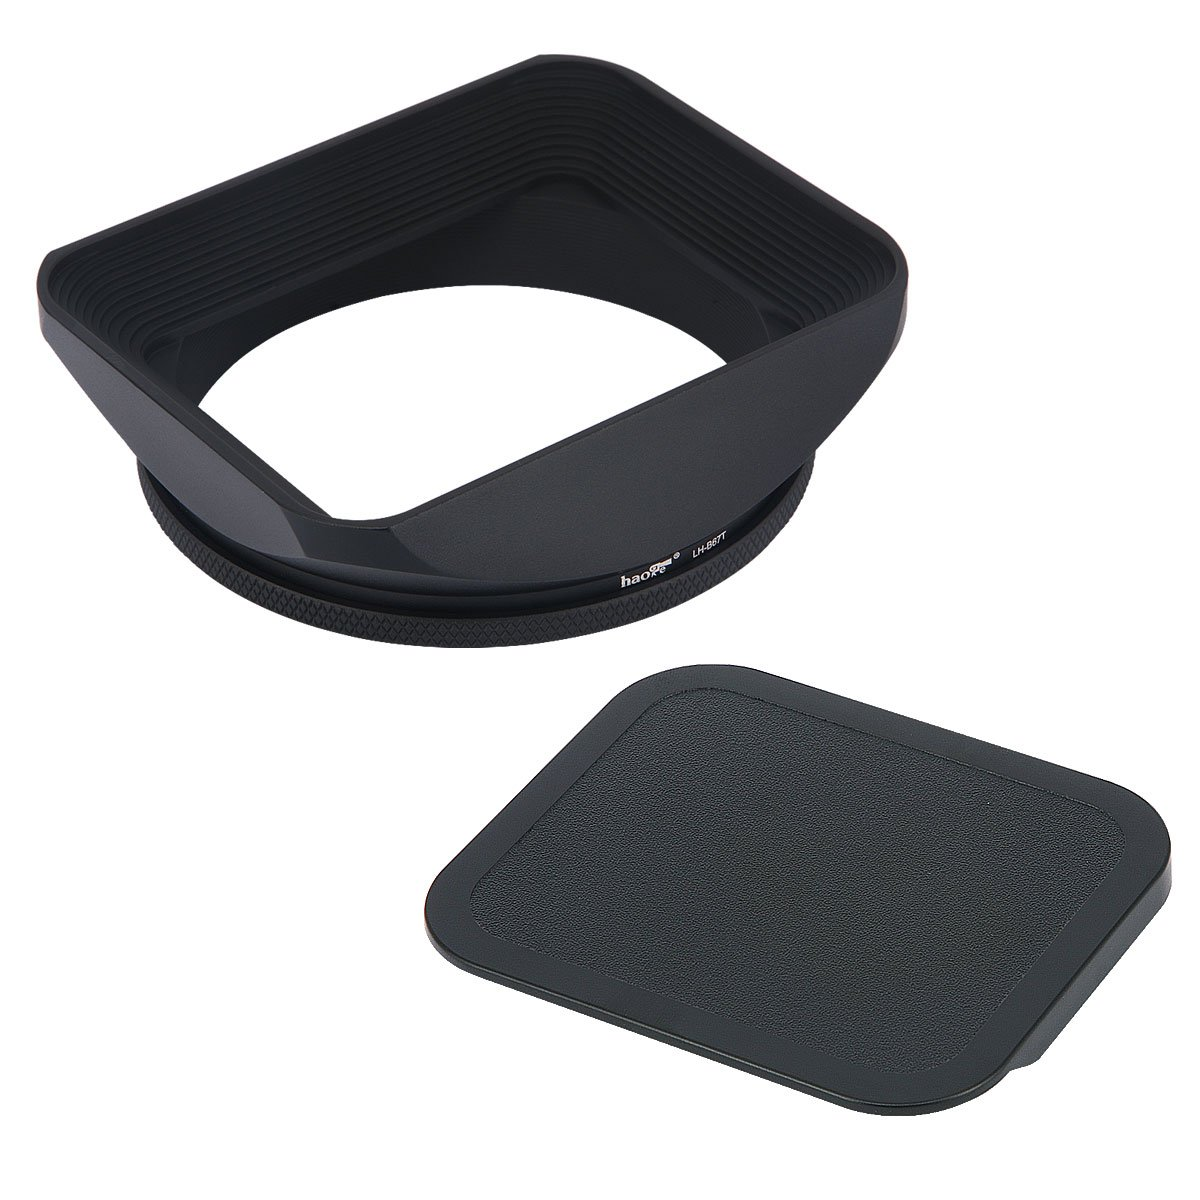 Haoge 67mm Square Metal Screw-in Mount Lens Hood Shade with Cap for 67mm Canon Nikon Sony Leica Leitz Carl Zeiss Voigtlander Nikkor Panasonic Fujifilm Olympus Lens and Other 67mm Filter Thread Lens by Haoge